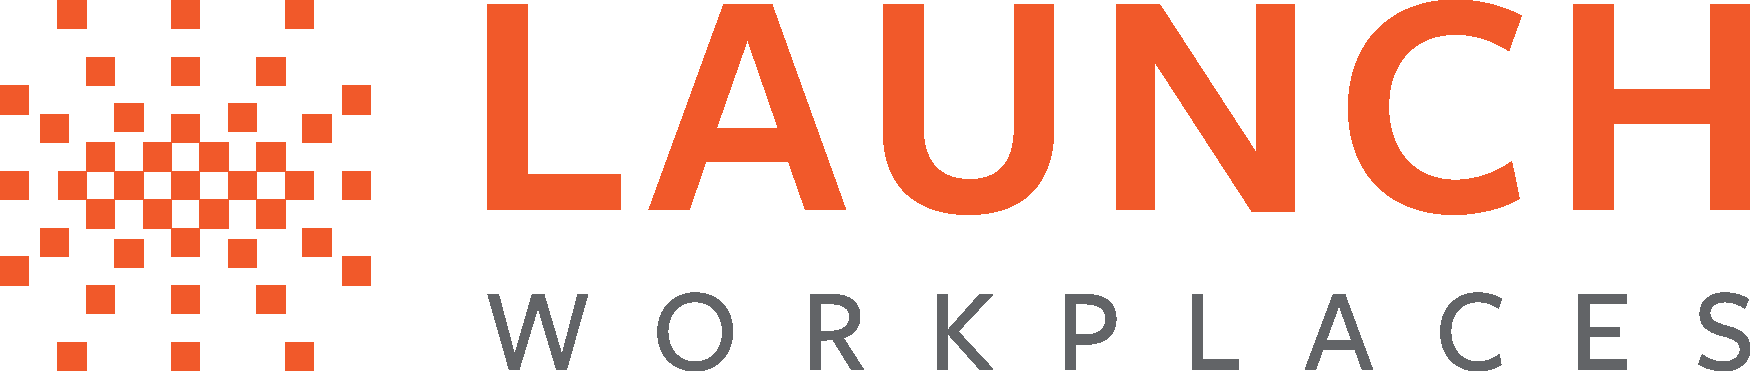 Launch Workplace